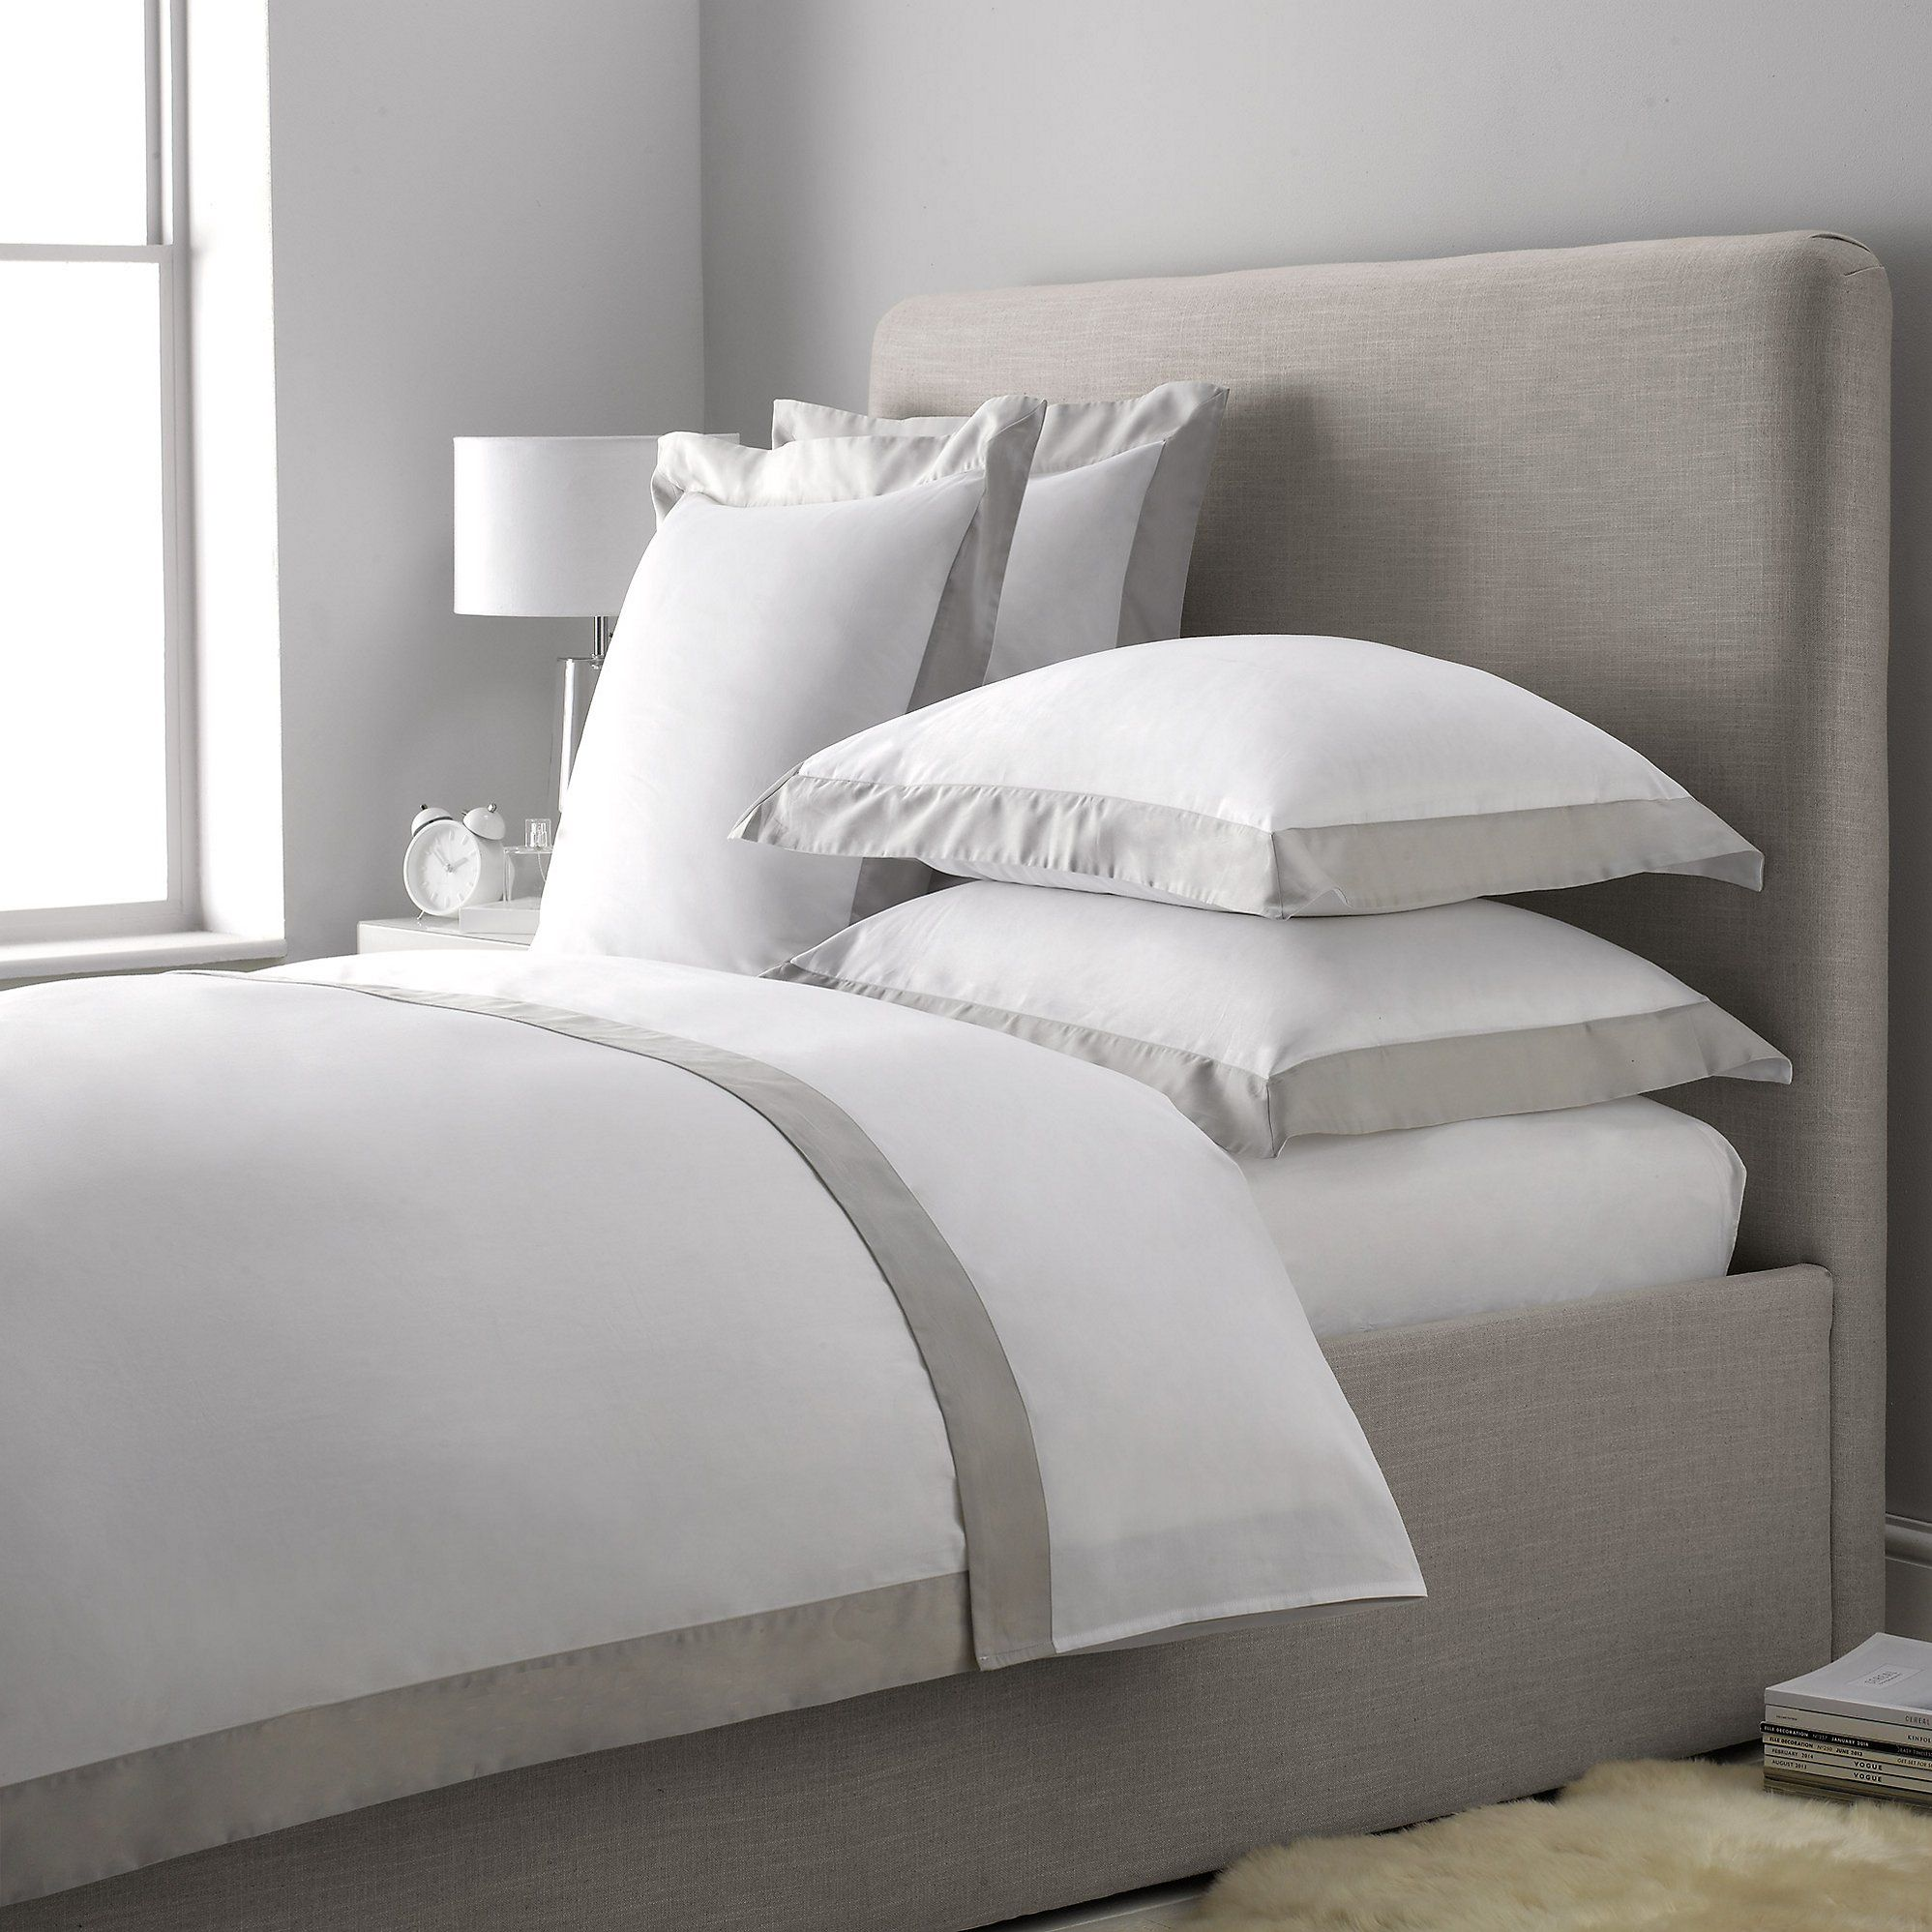 Genoa Bed Linen Collection The White Company Nancy Duvet Covers Sweetgalas